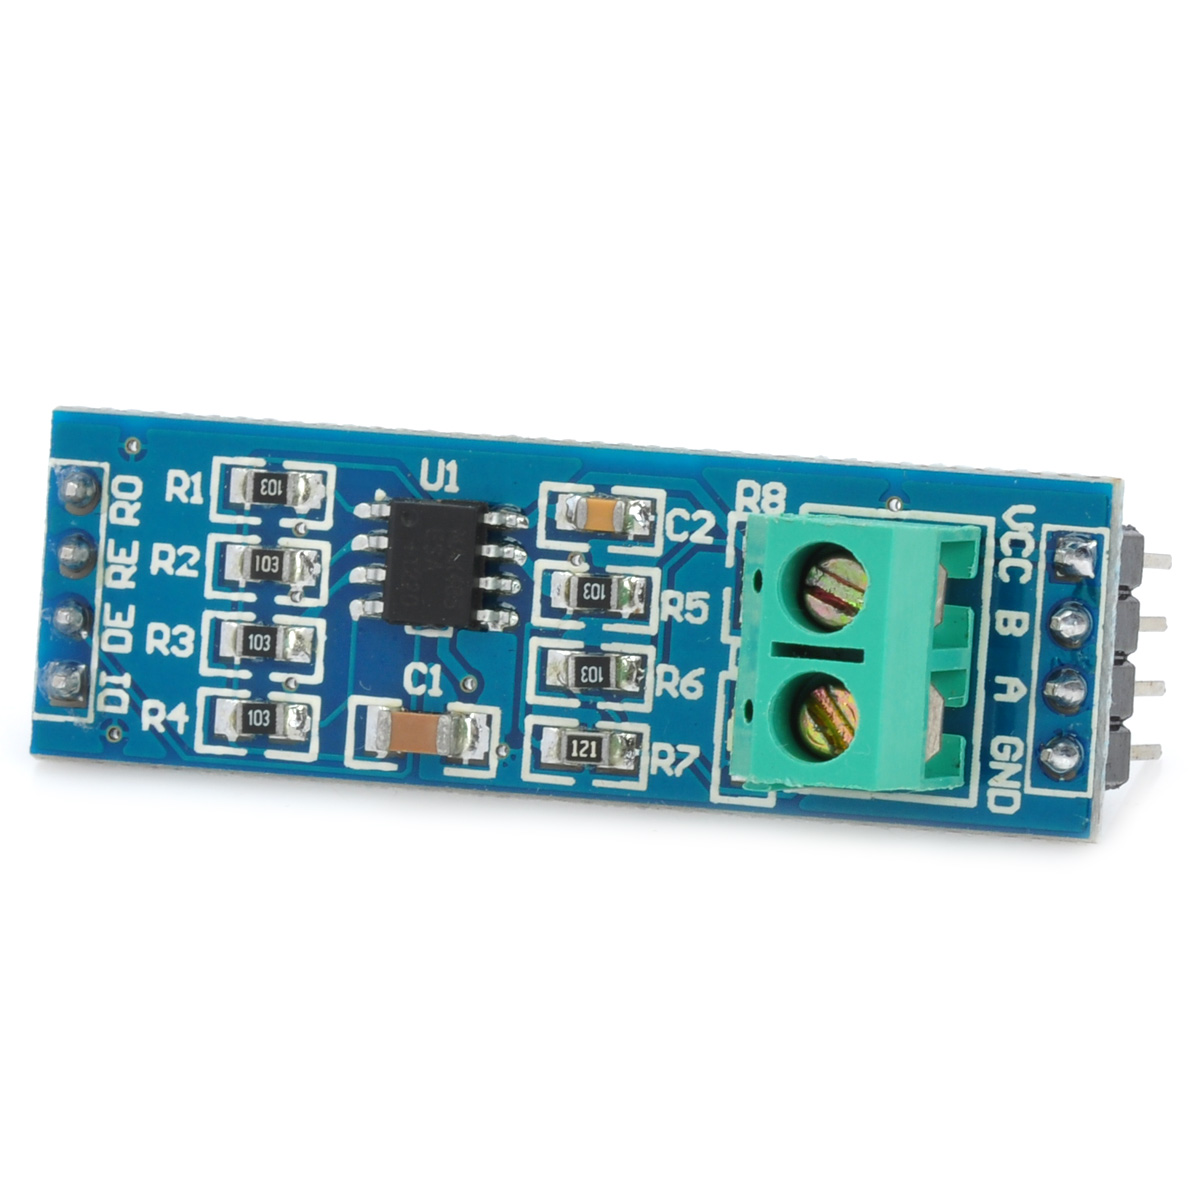 5V MAX485 Chip TTL to RS485 Converter Module Board for Arduino